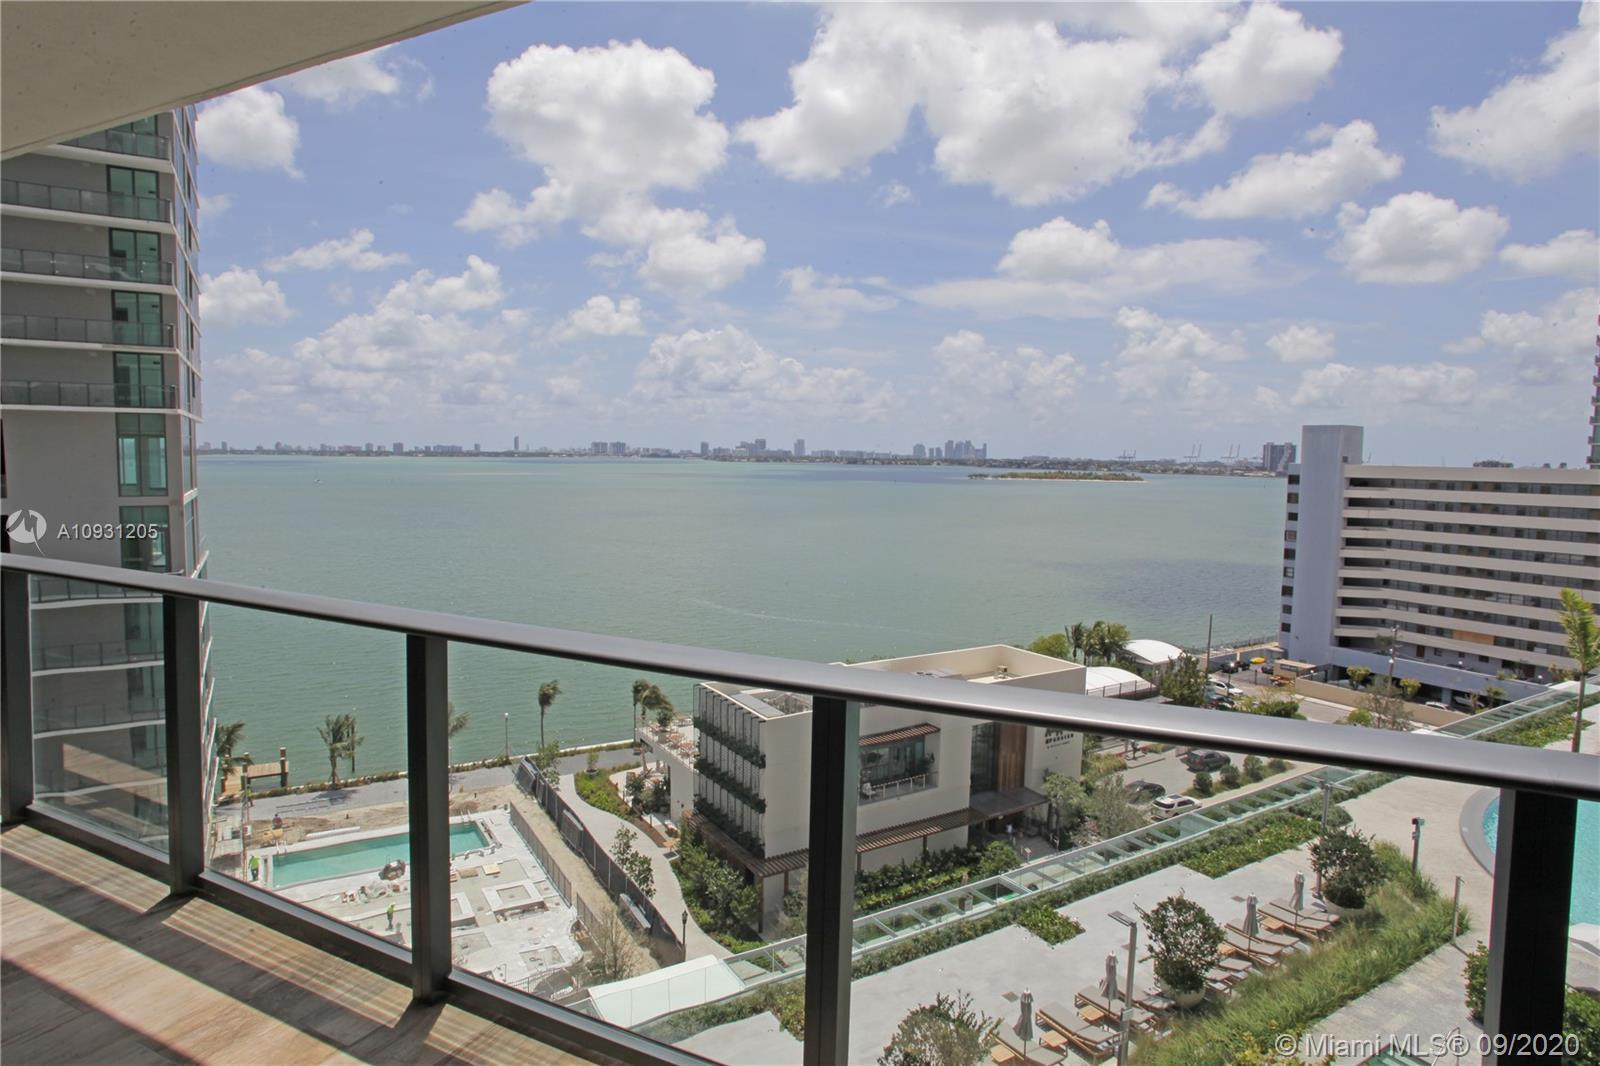 2 Bed 2 Bath +Den with Direct Water Views! 1,244 SqFt under A/C, 9 foot ceilings, FULLY FINISHED WIT